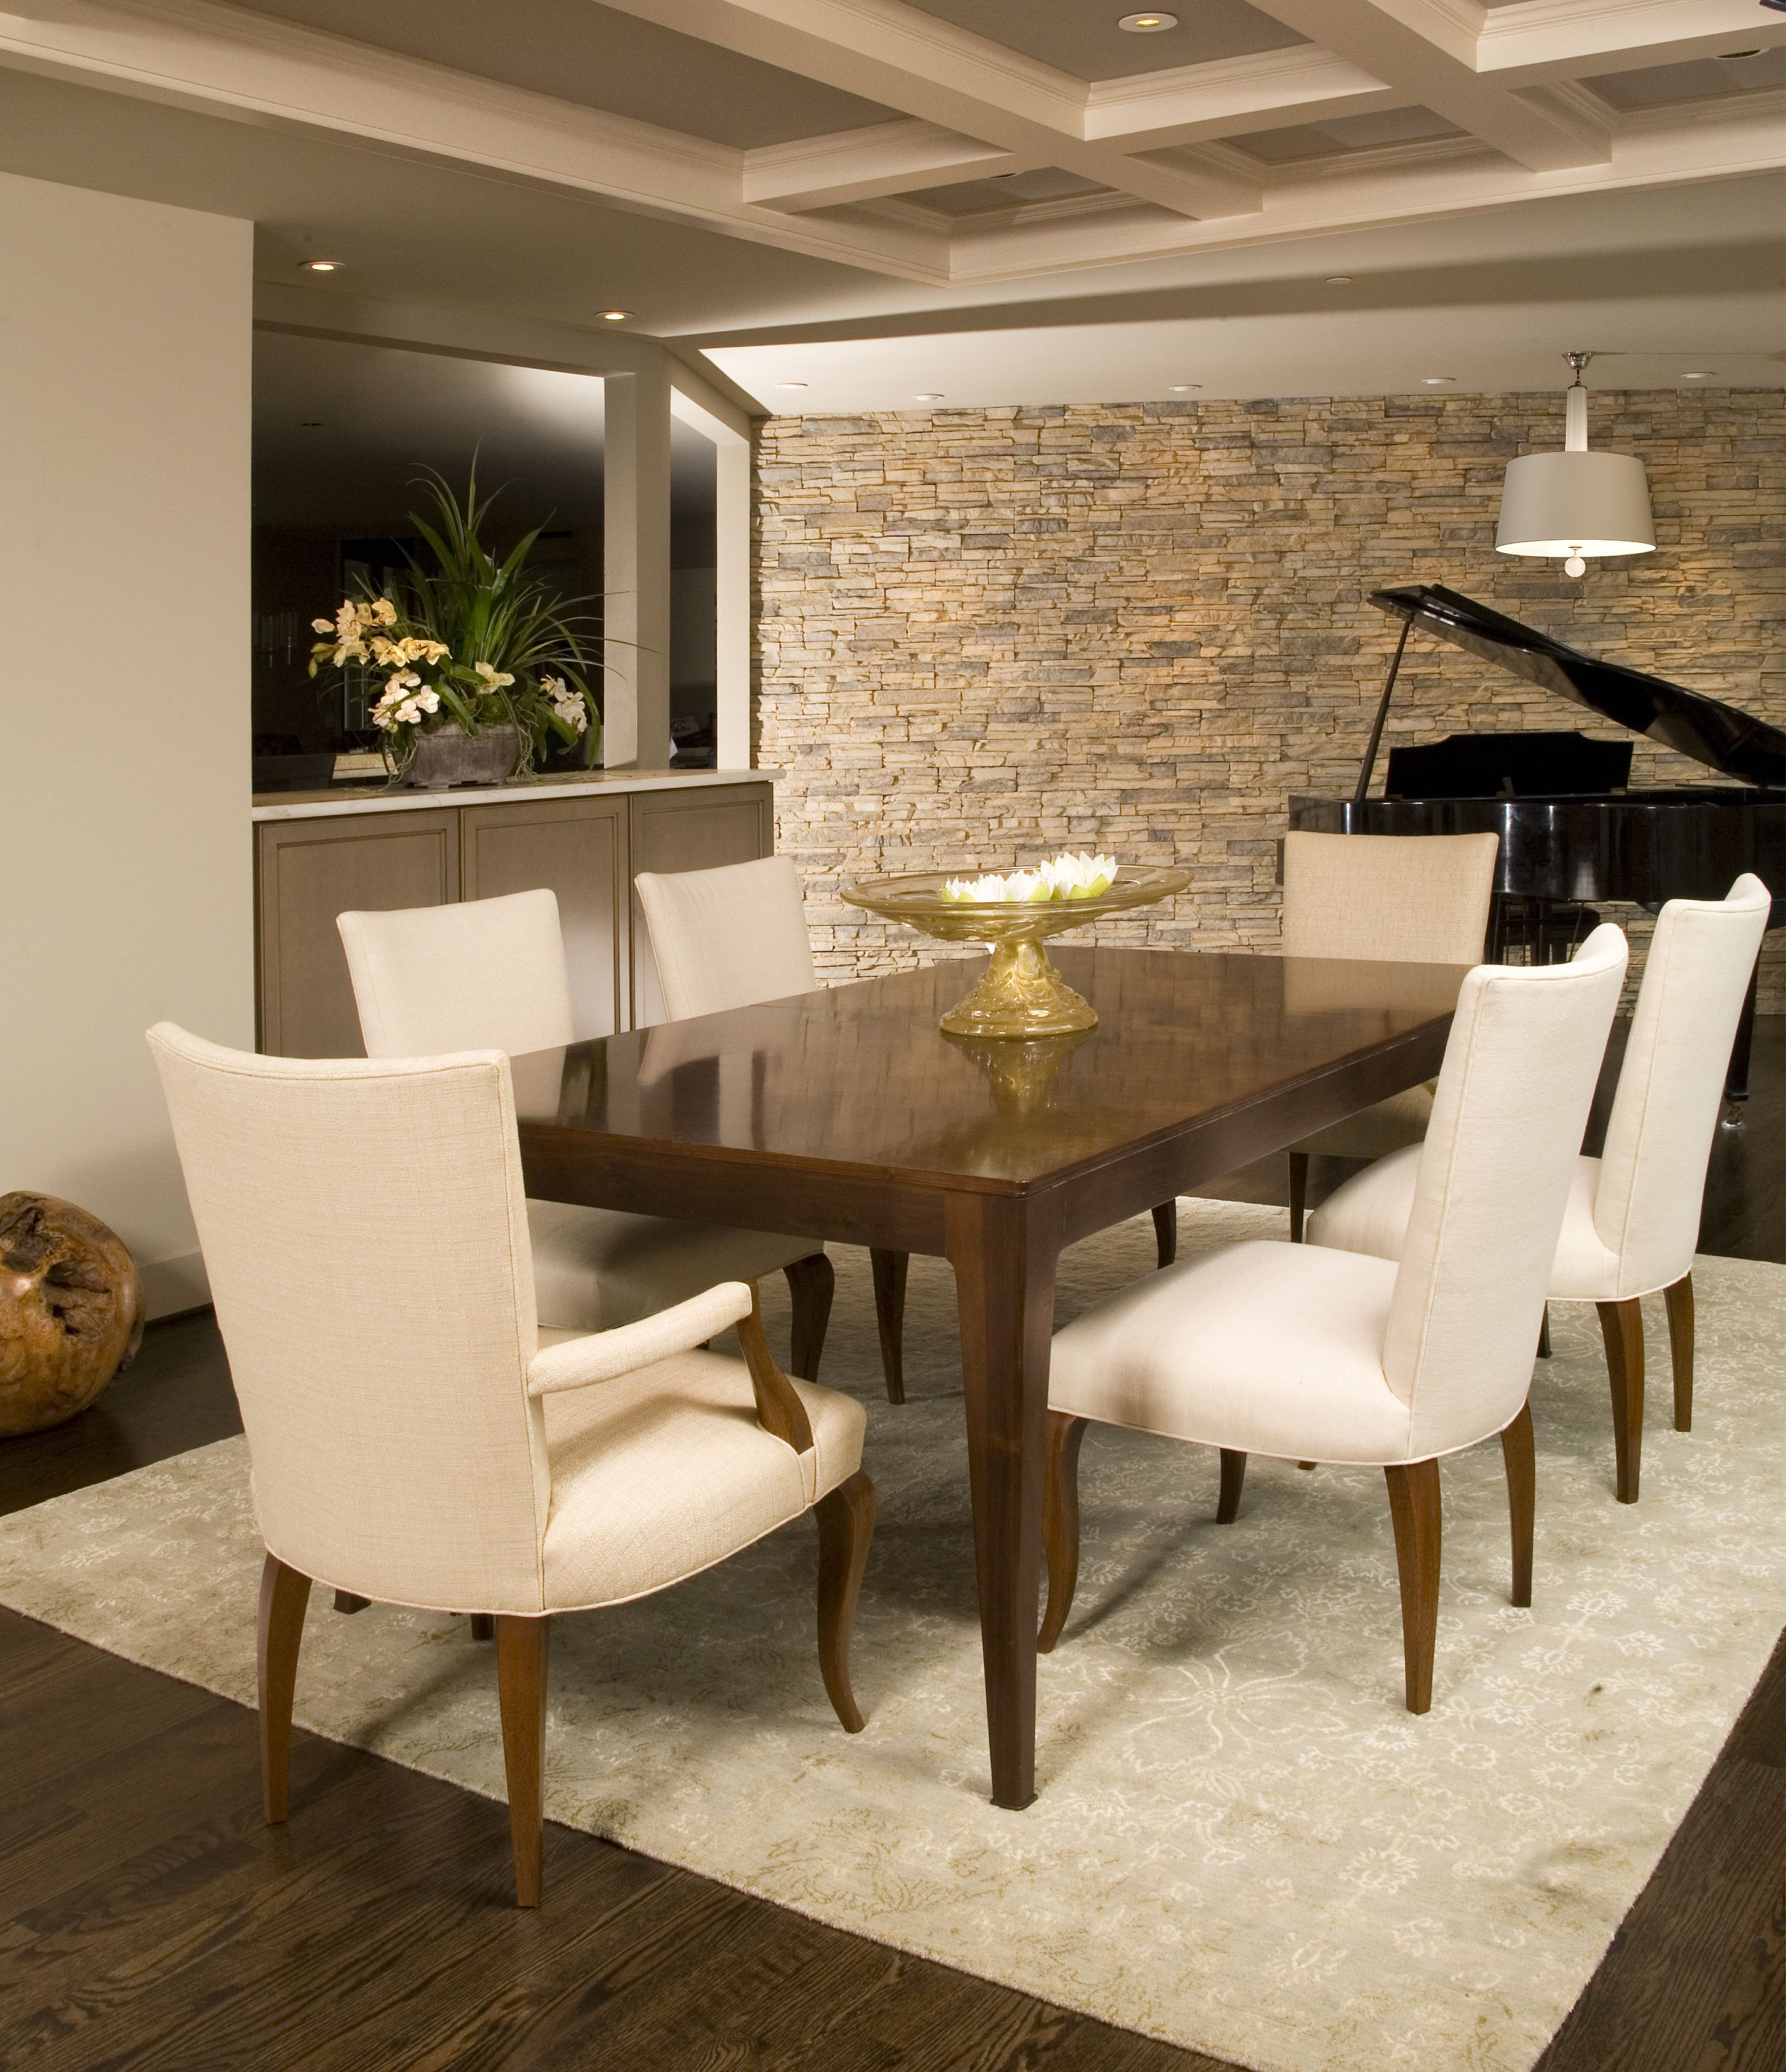 Wall Ideas For Dining Room: Modern Dining Room With Clean Lines And Neutral Stone Wall